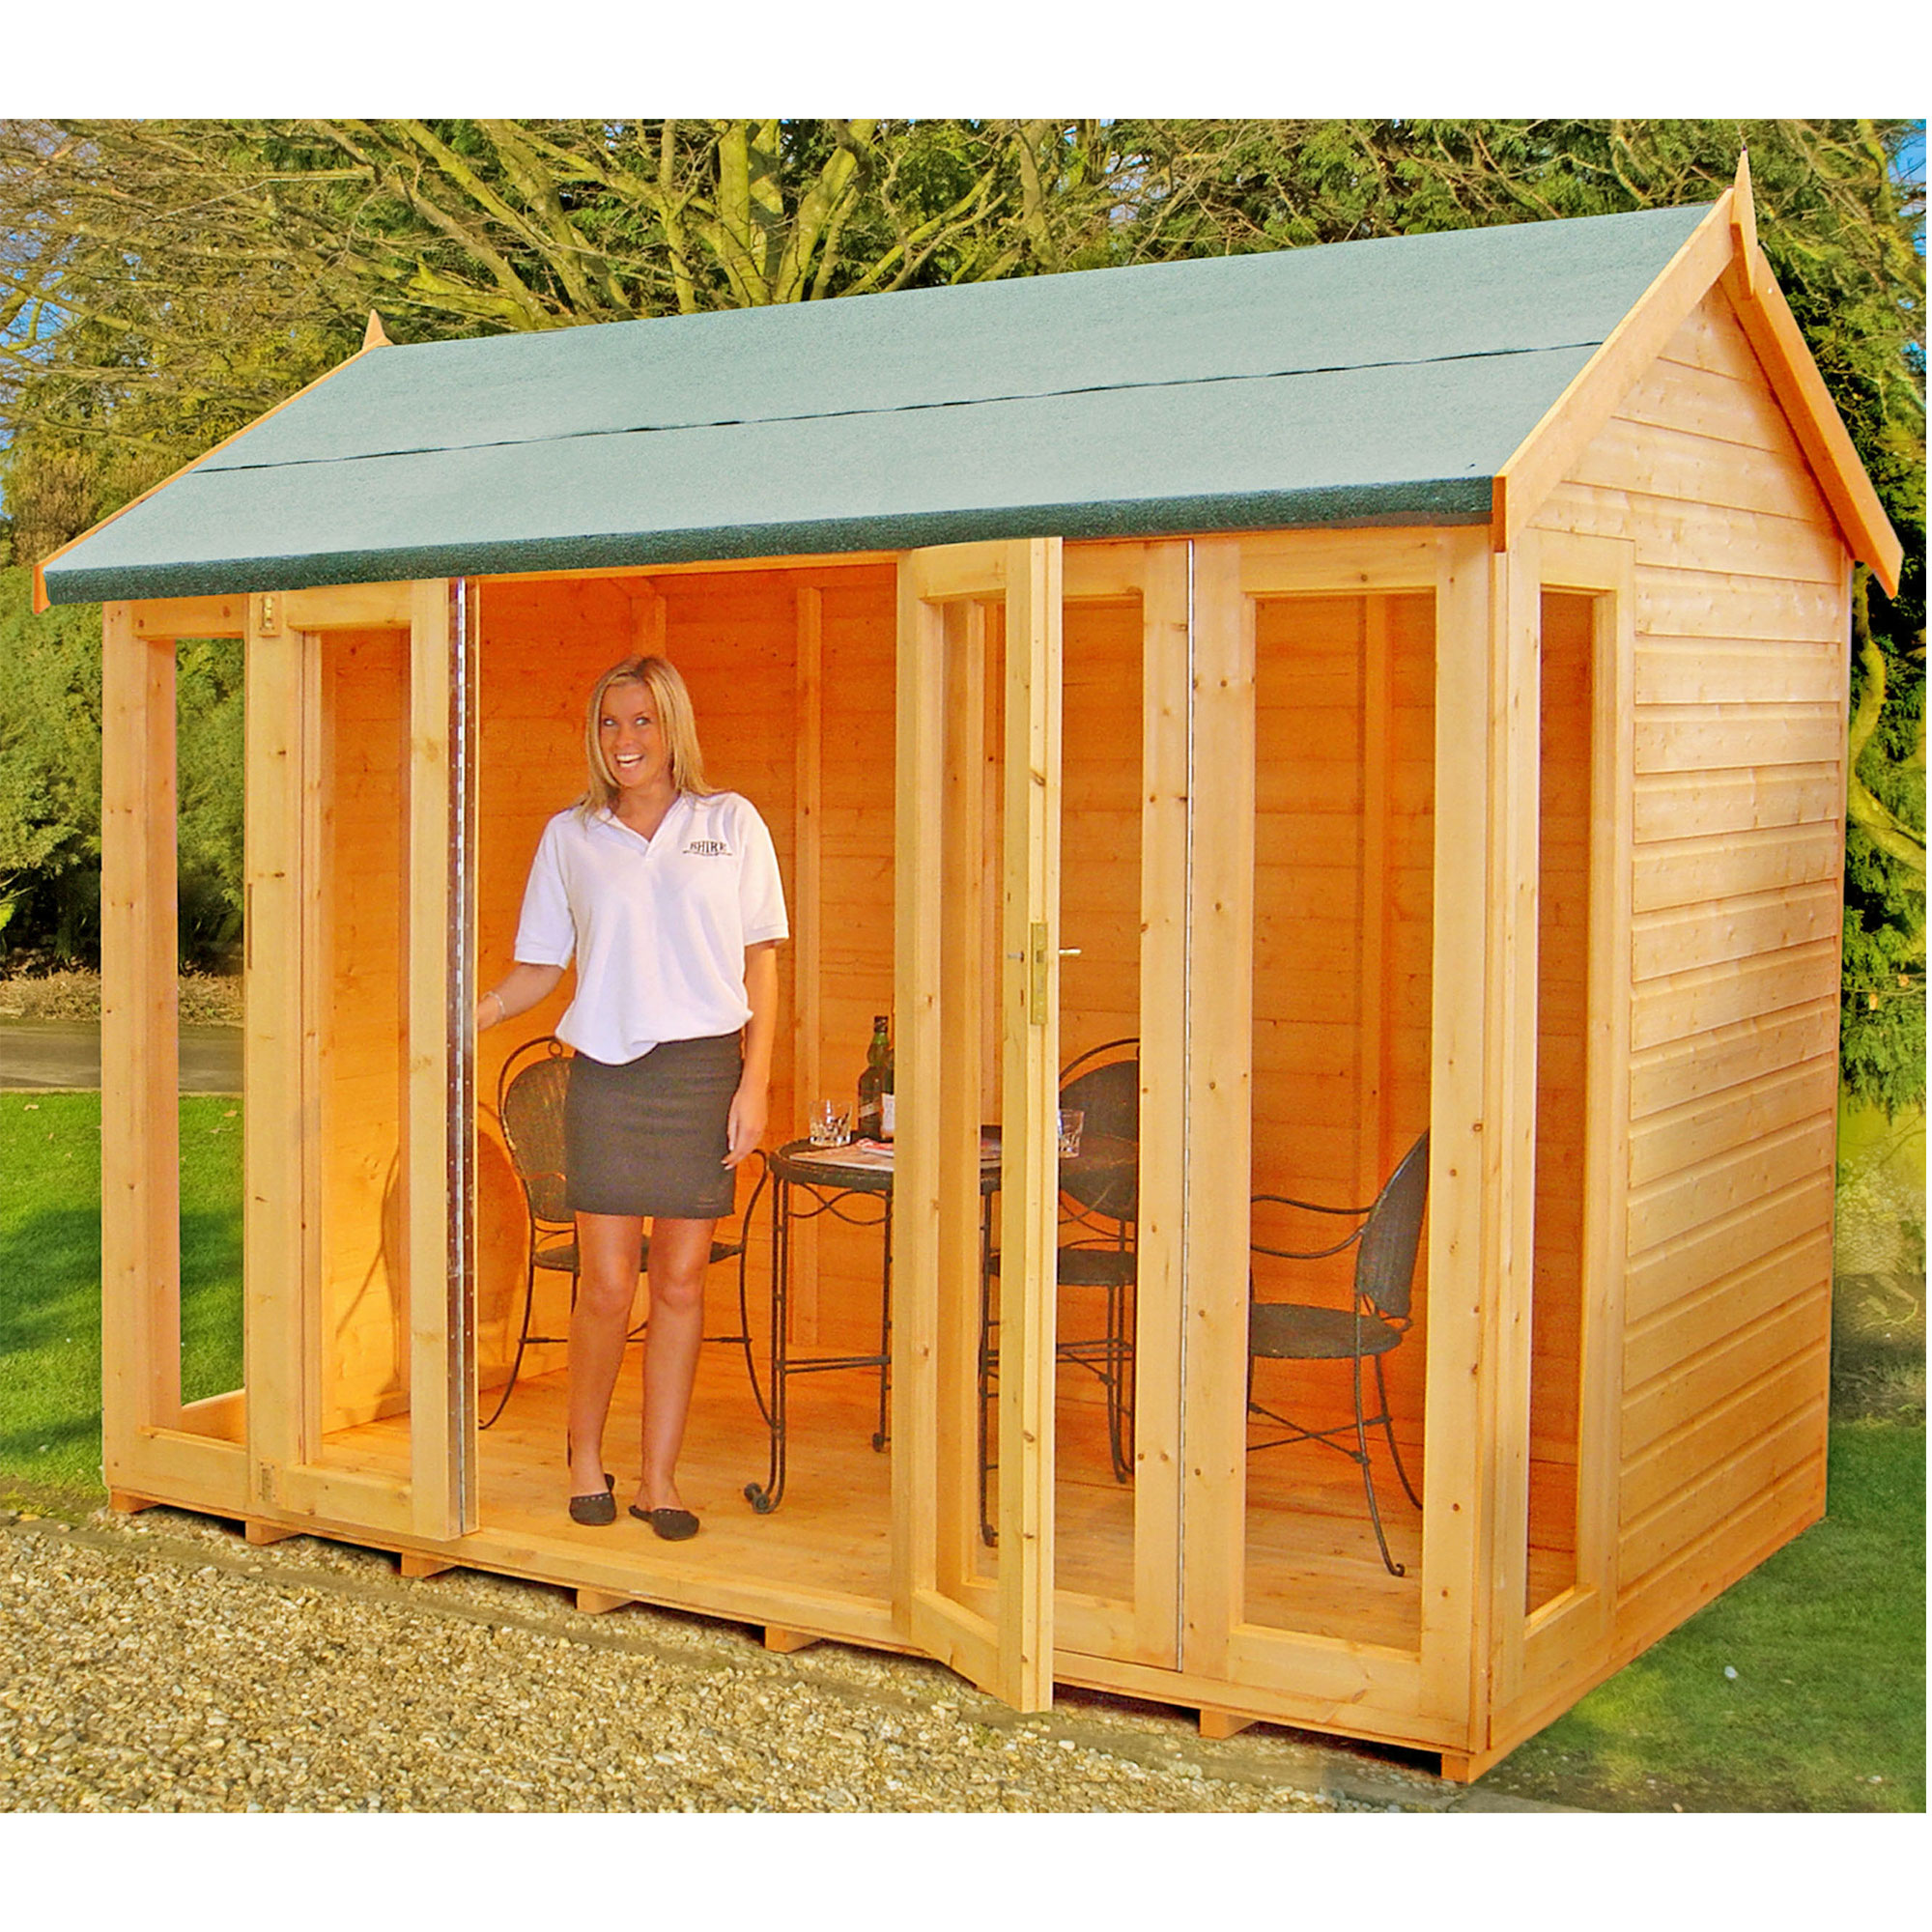 Image of 10'3 x 6'5 (3.1x1.9m) Shire Blenheim Wooden Summerhouse